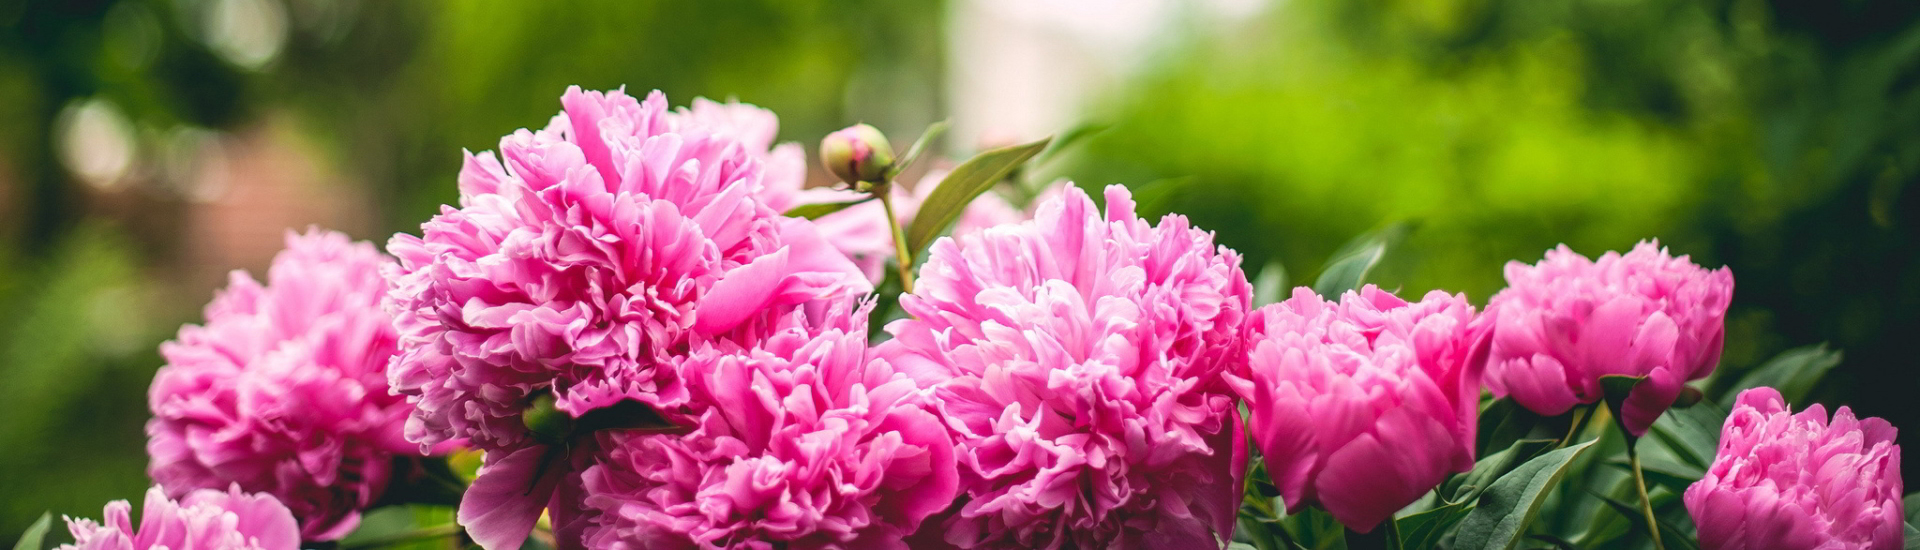 Pickering Horticultural Society Header Image 1 Peonies